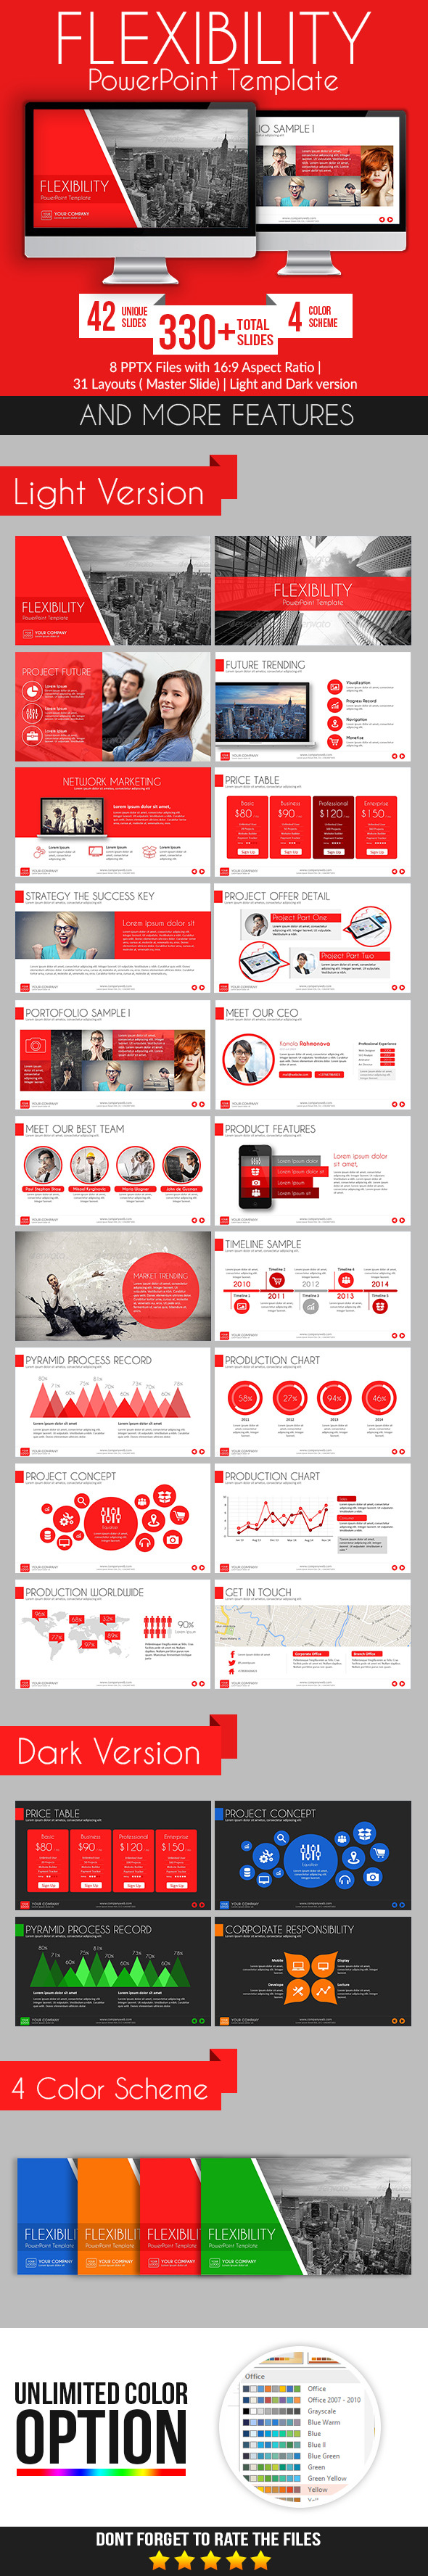 Flexibility PowerPoint Template - Business PowerPoint Templates